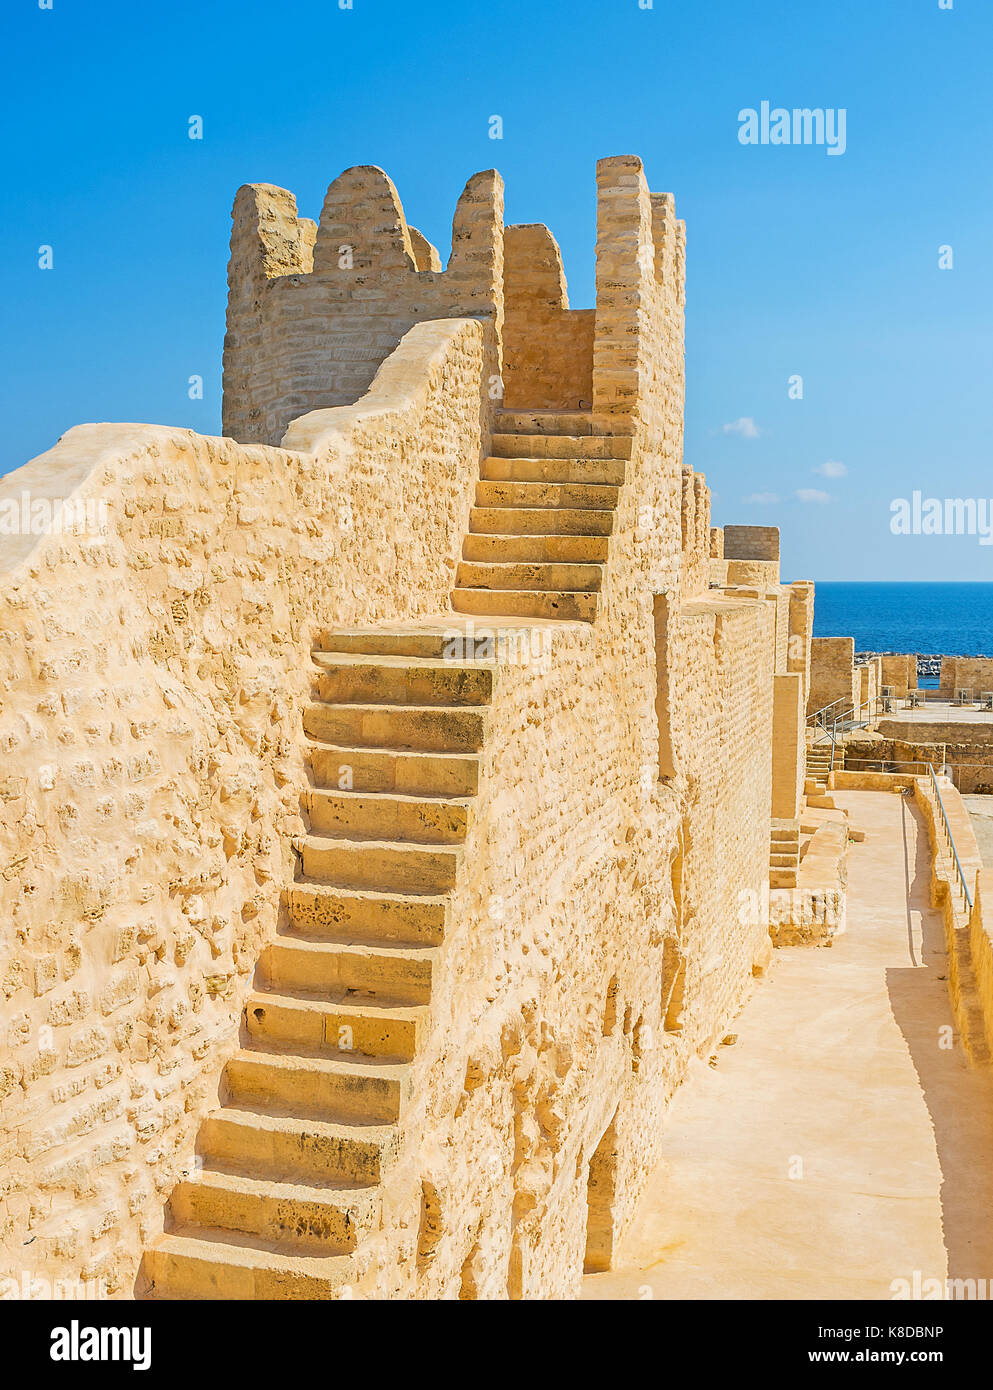 The old stone stairs leads to the preserved tower of Ribat fortress, nawadays this defensive structure serves as - Stock Image